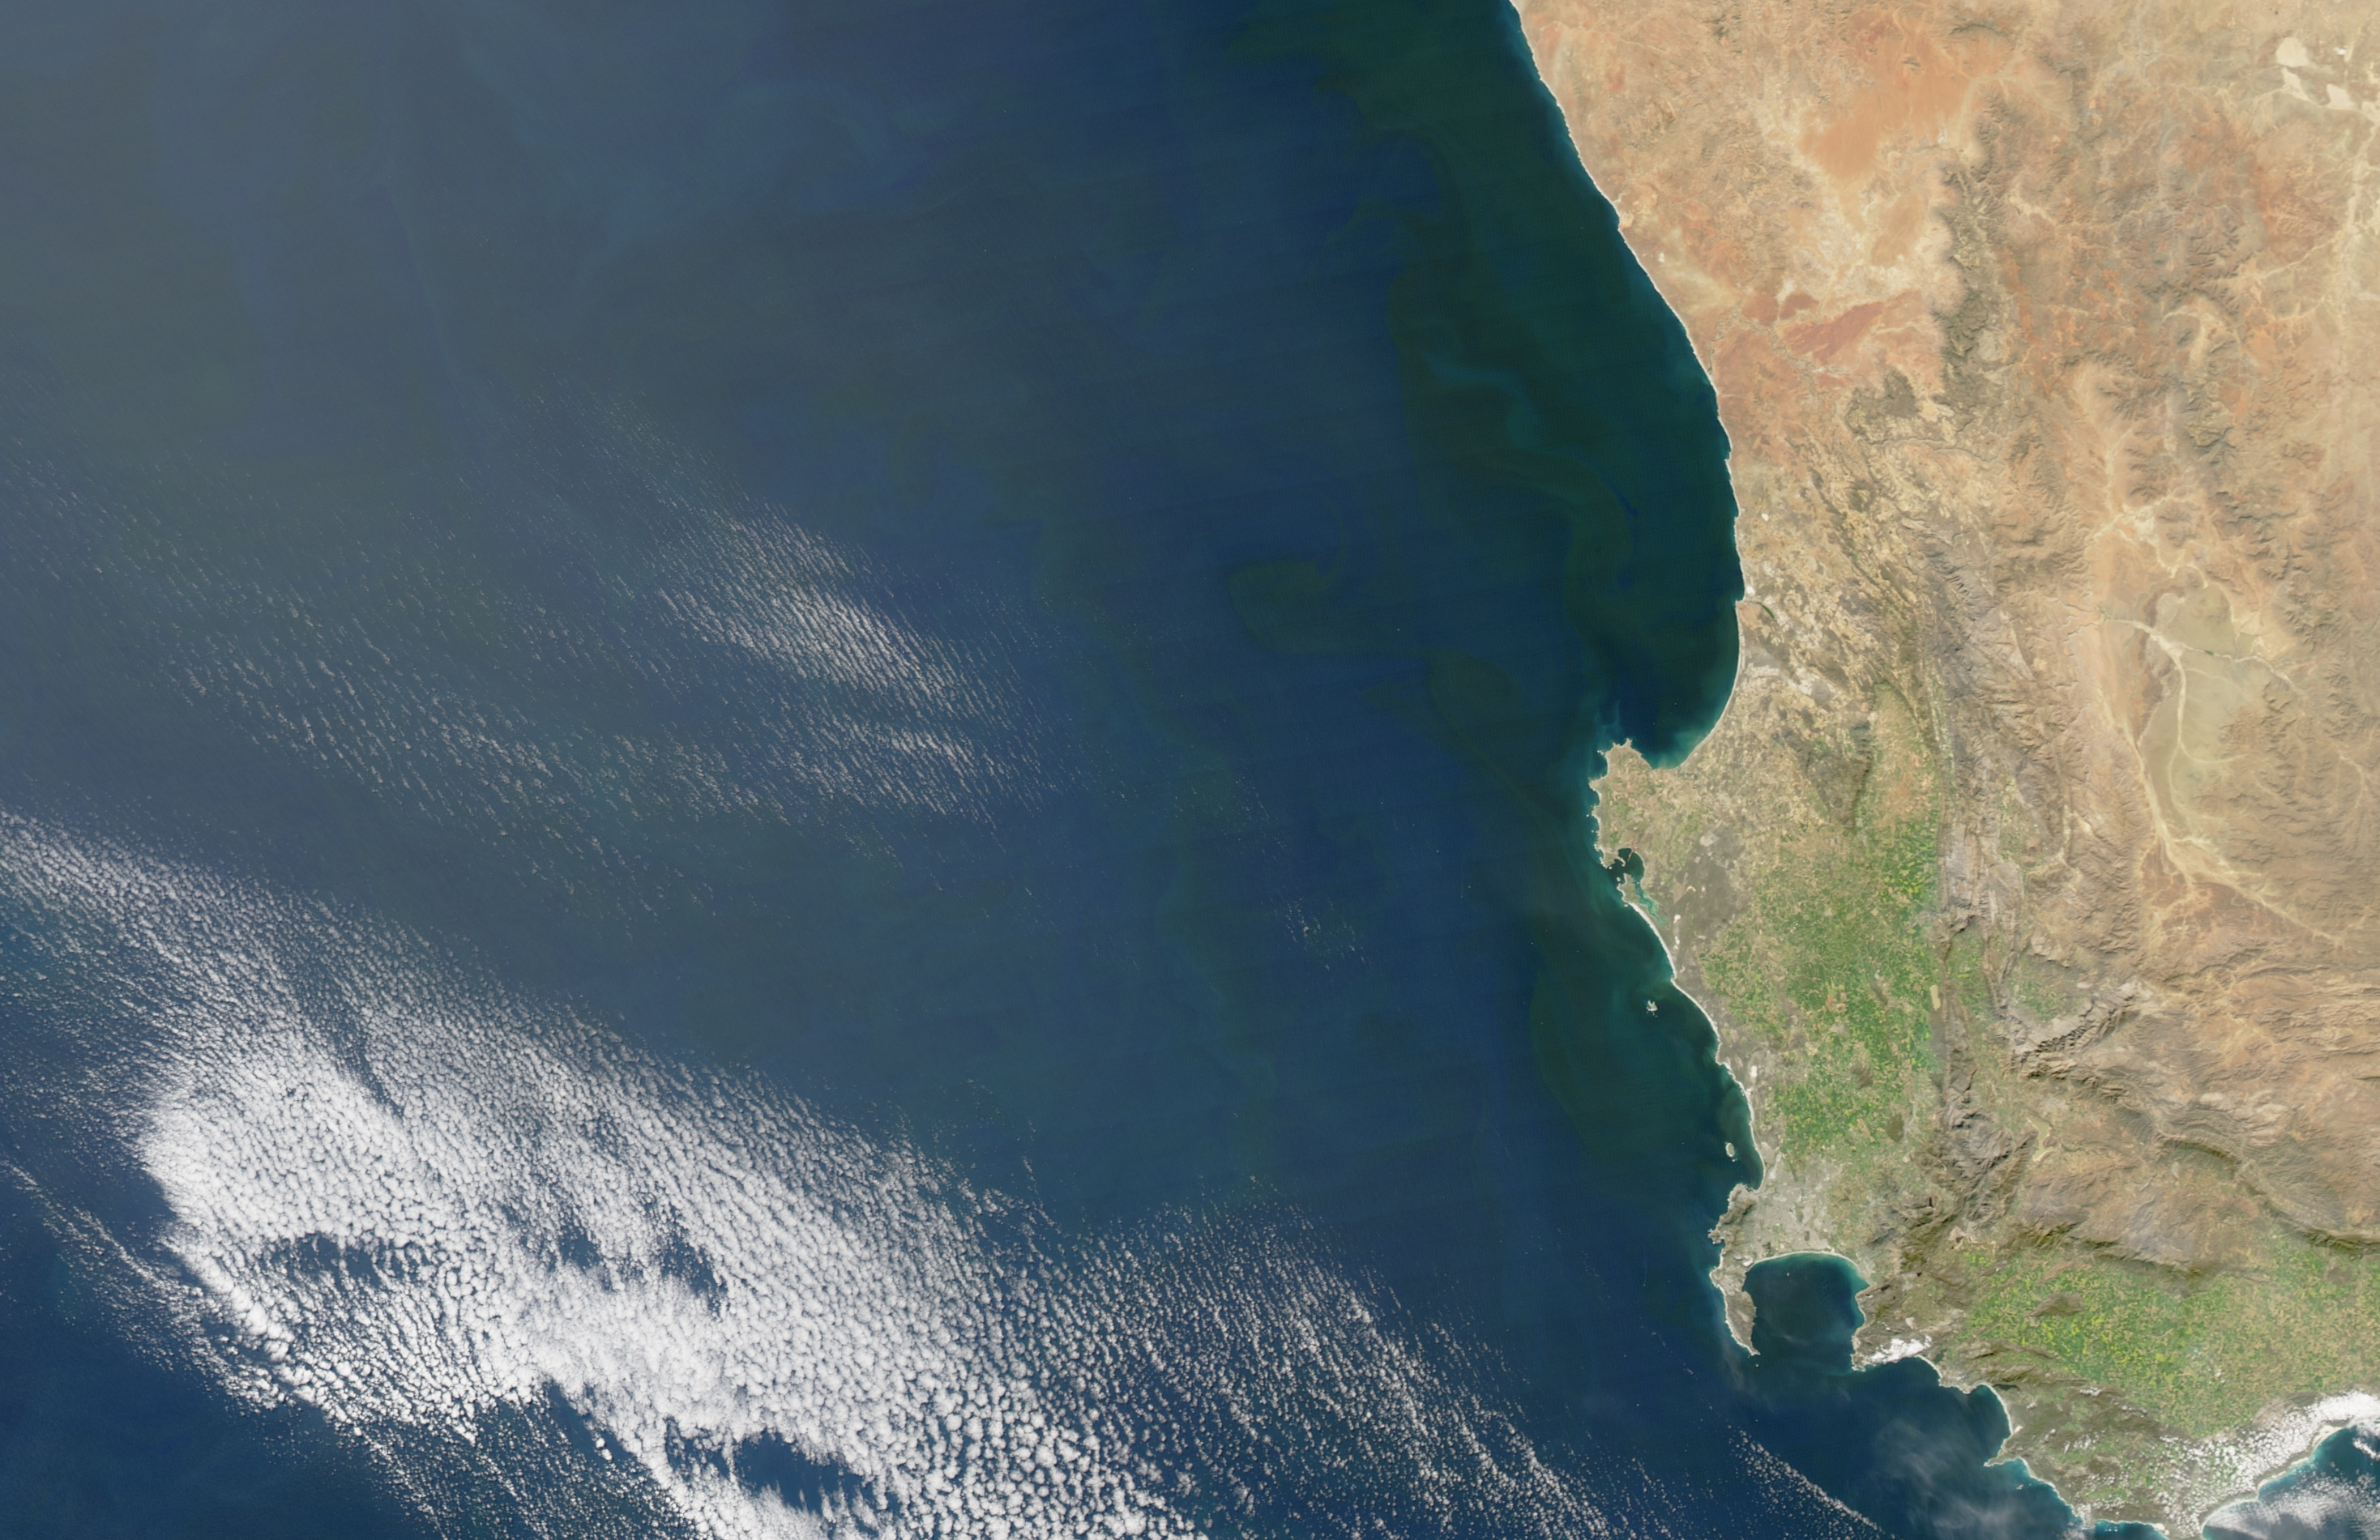 Today's Image of the Day comes courtesy of the NASA Earth Observatory and features a look at the Benguela Current off the southwestern coast of Africa.